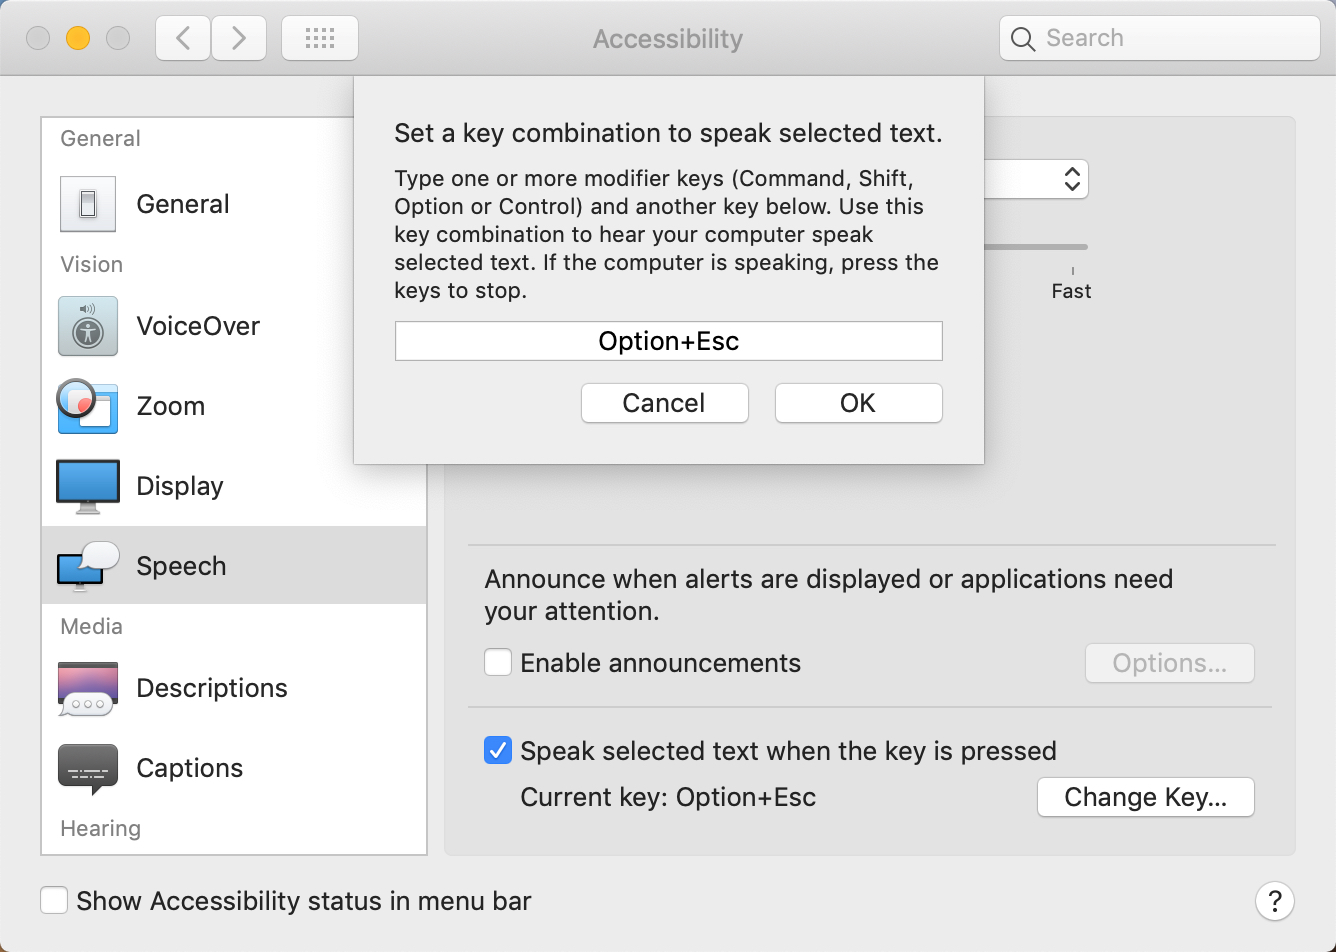 Choose an alternative key combination for the text-to-speech feature on Mac